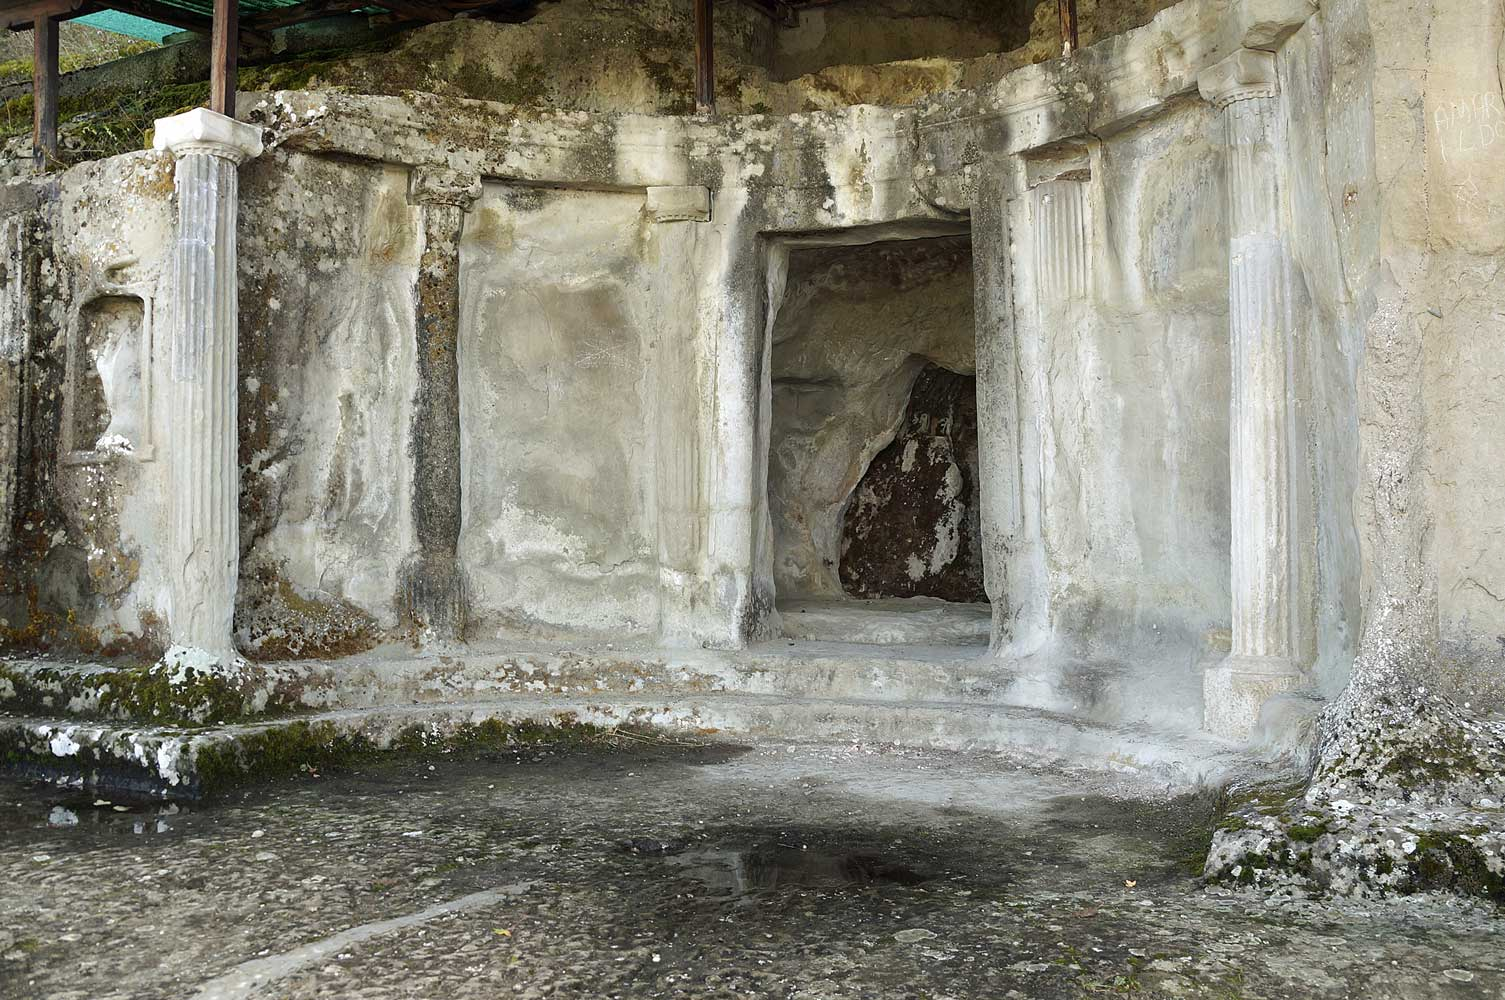 Royal-tombs-of-Selca-e-Poshtme-Pogradec-Albania